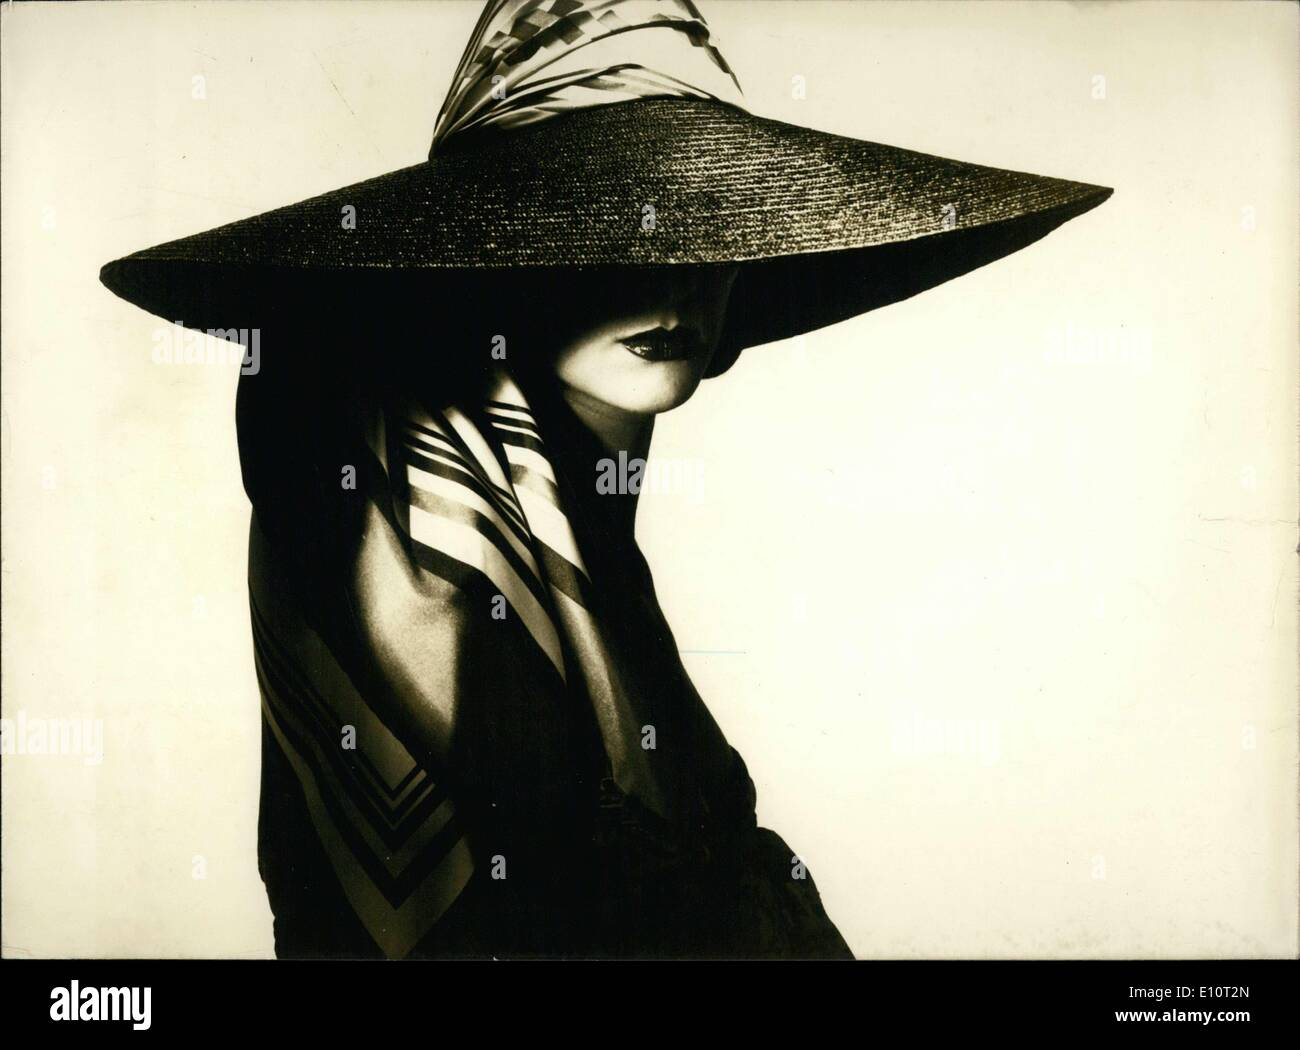 49e3f86f Jan. 07, 1974 - Jean Patou's Wide Brimmed Straw Hat Stock Photo ...